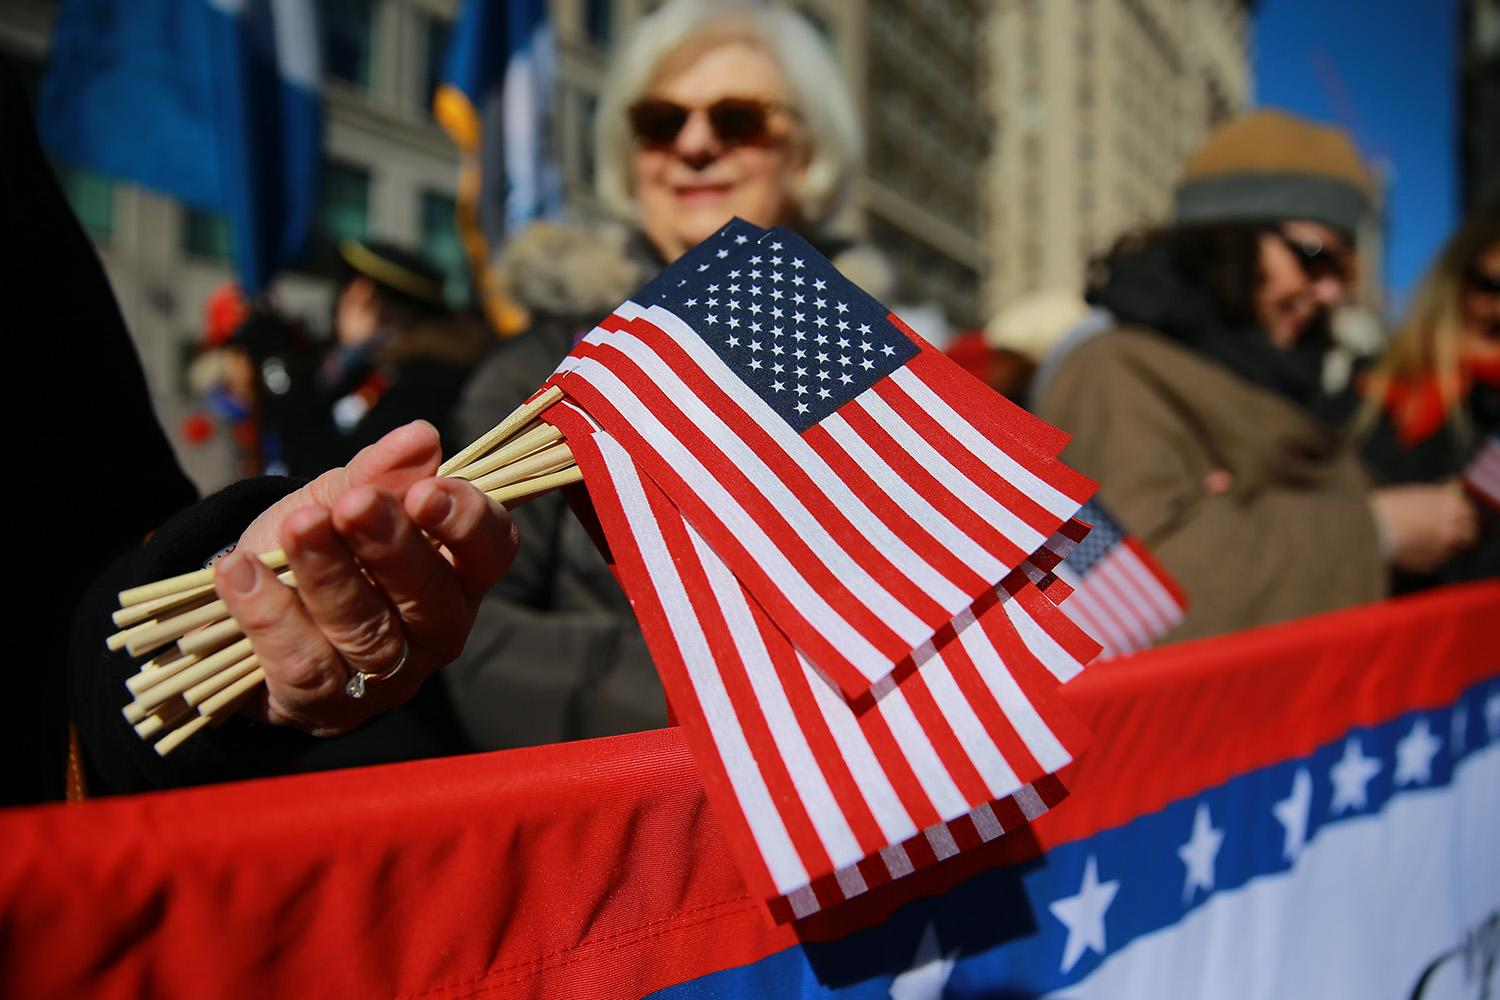 <p>A woman holds flags for the Veterans Day parade in New York on Nov. 11, 2018. (Photo: Gordon Donovan/Yahoo News) </p>